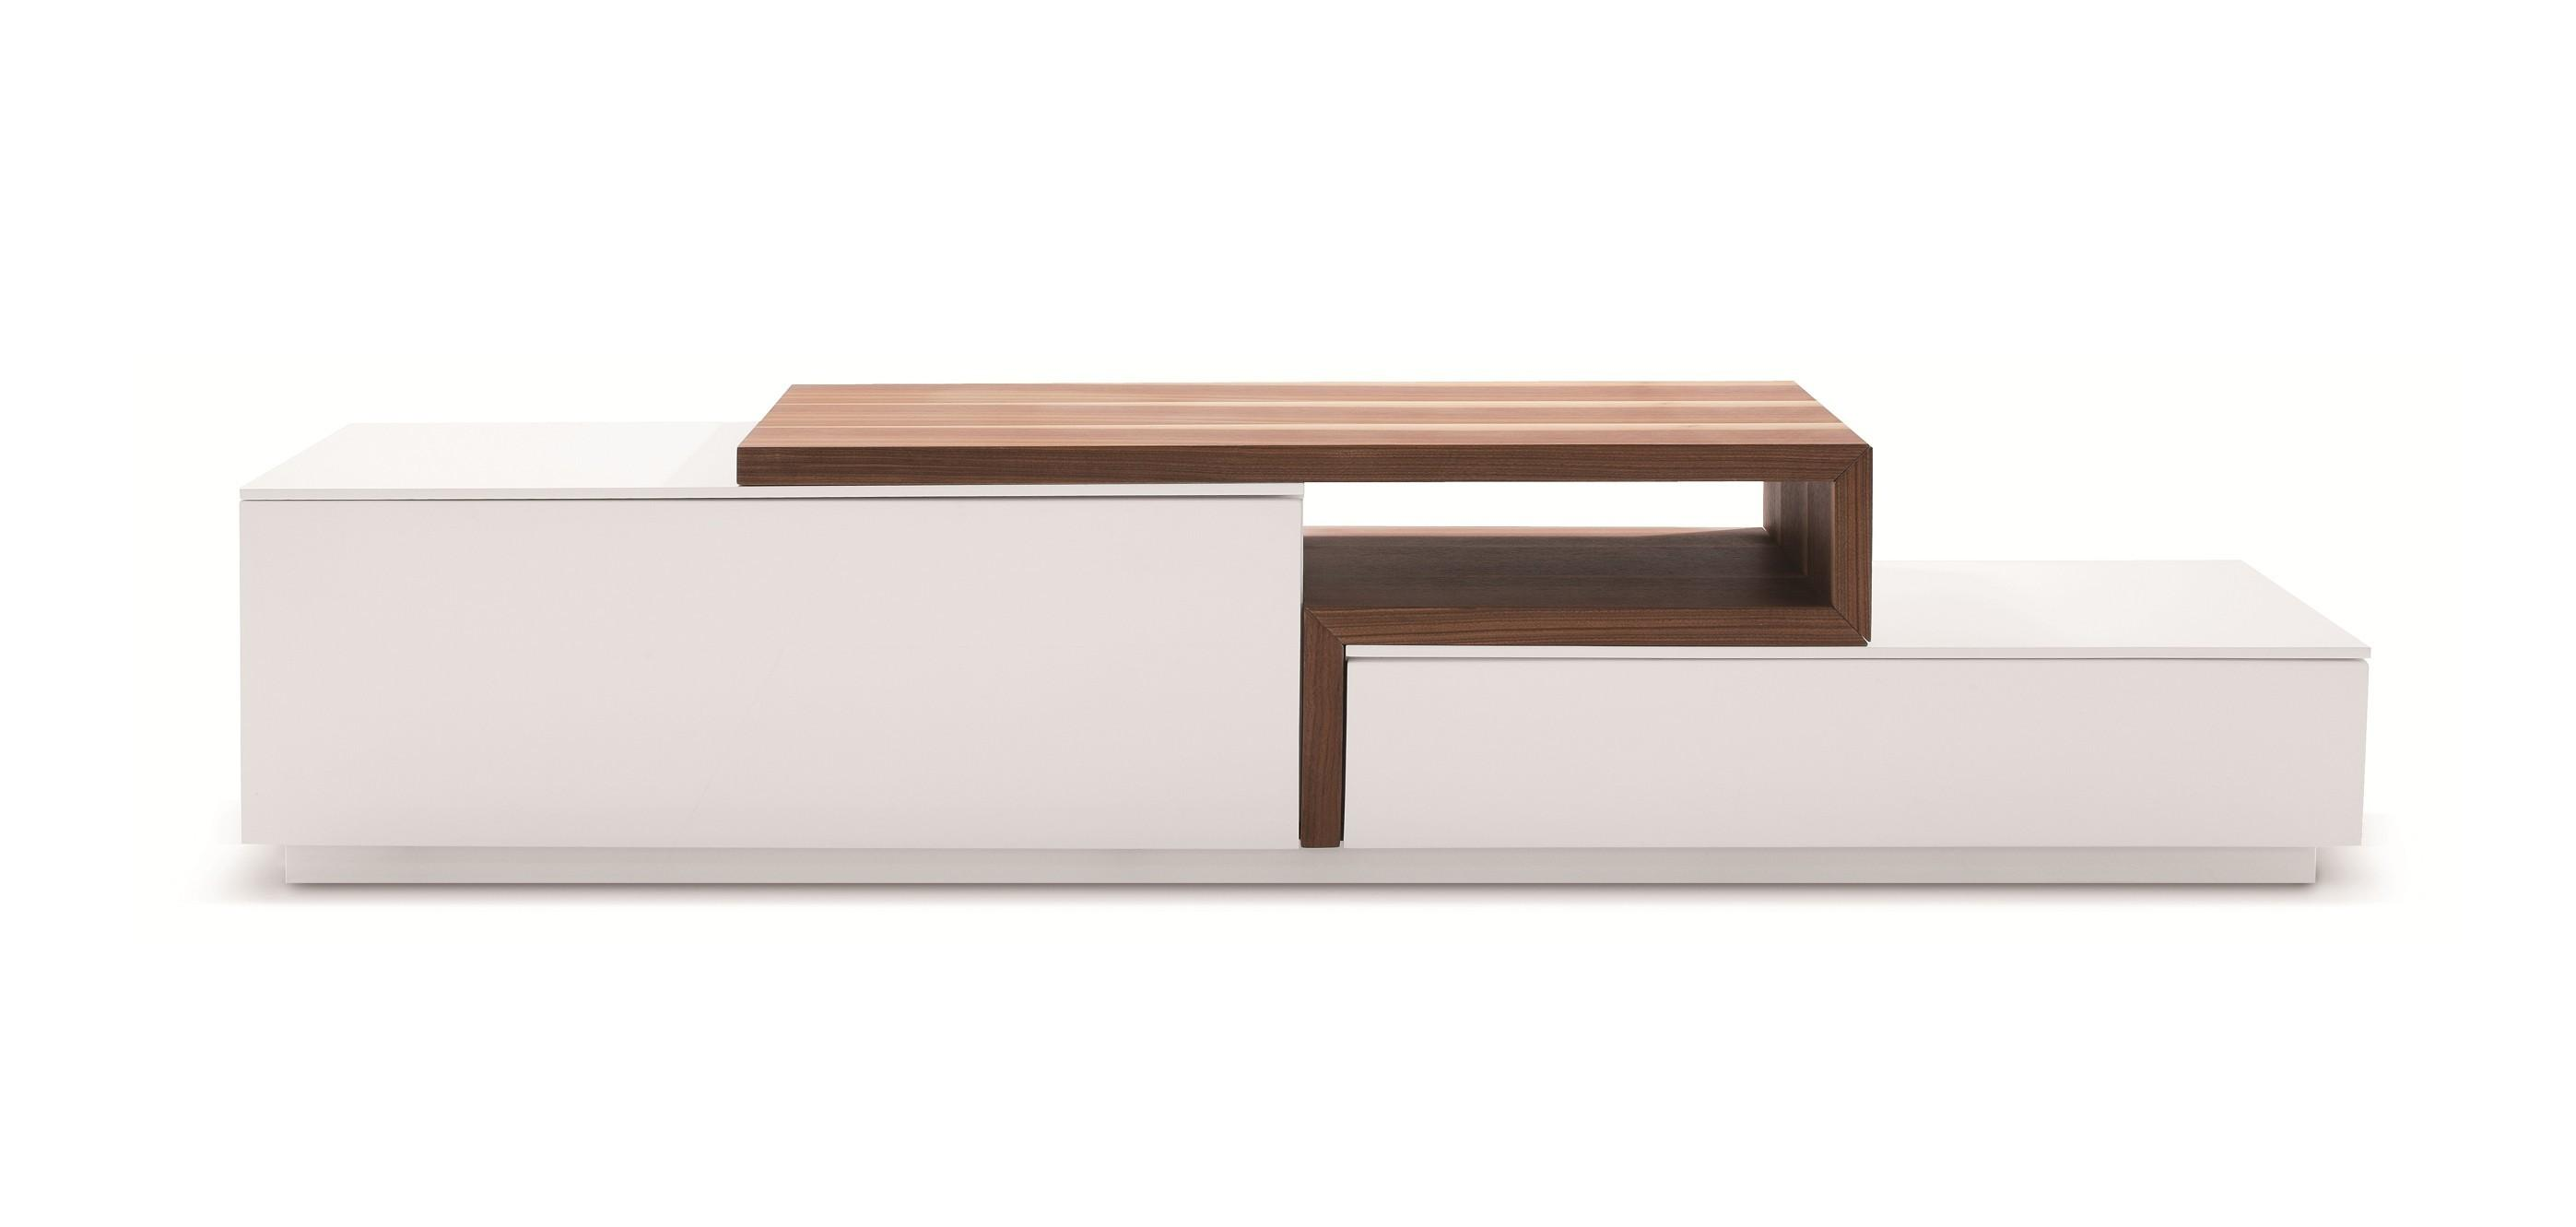 Furniture Modern Wood Media Cabinet Stand Wall